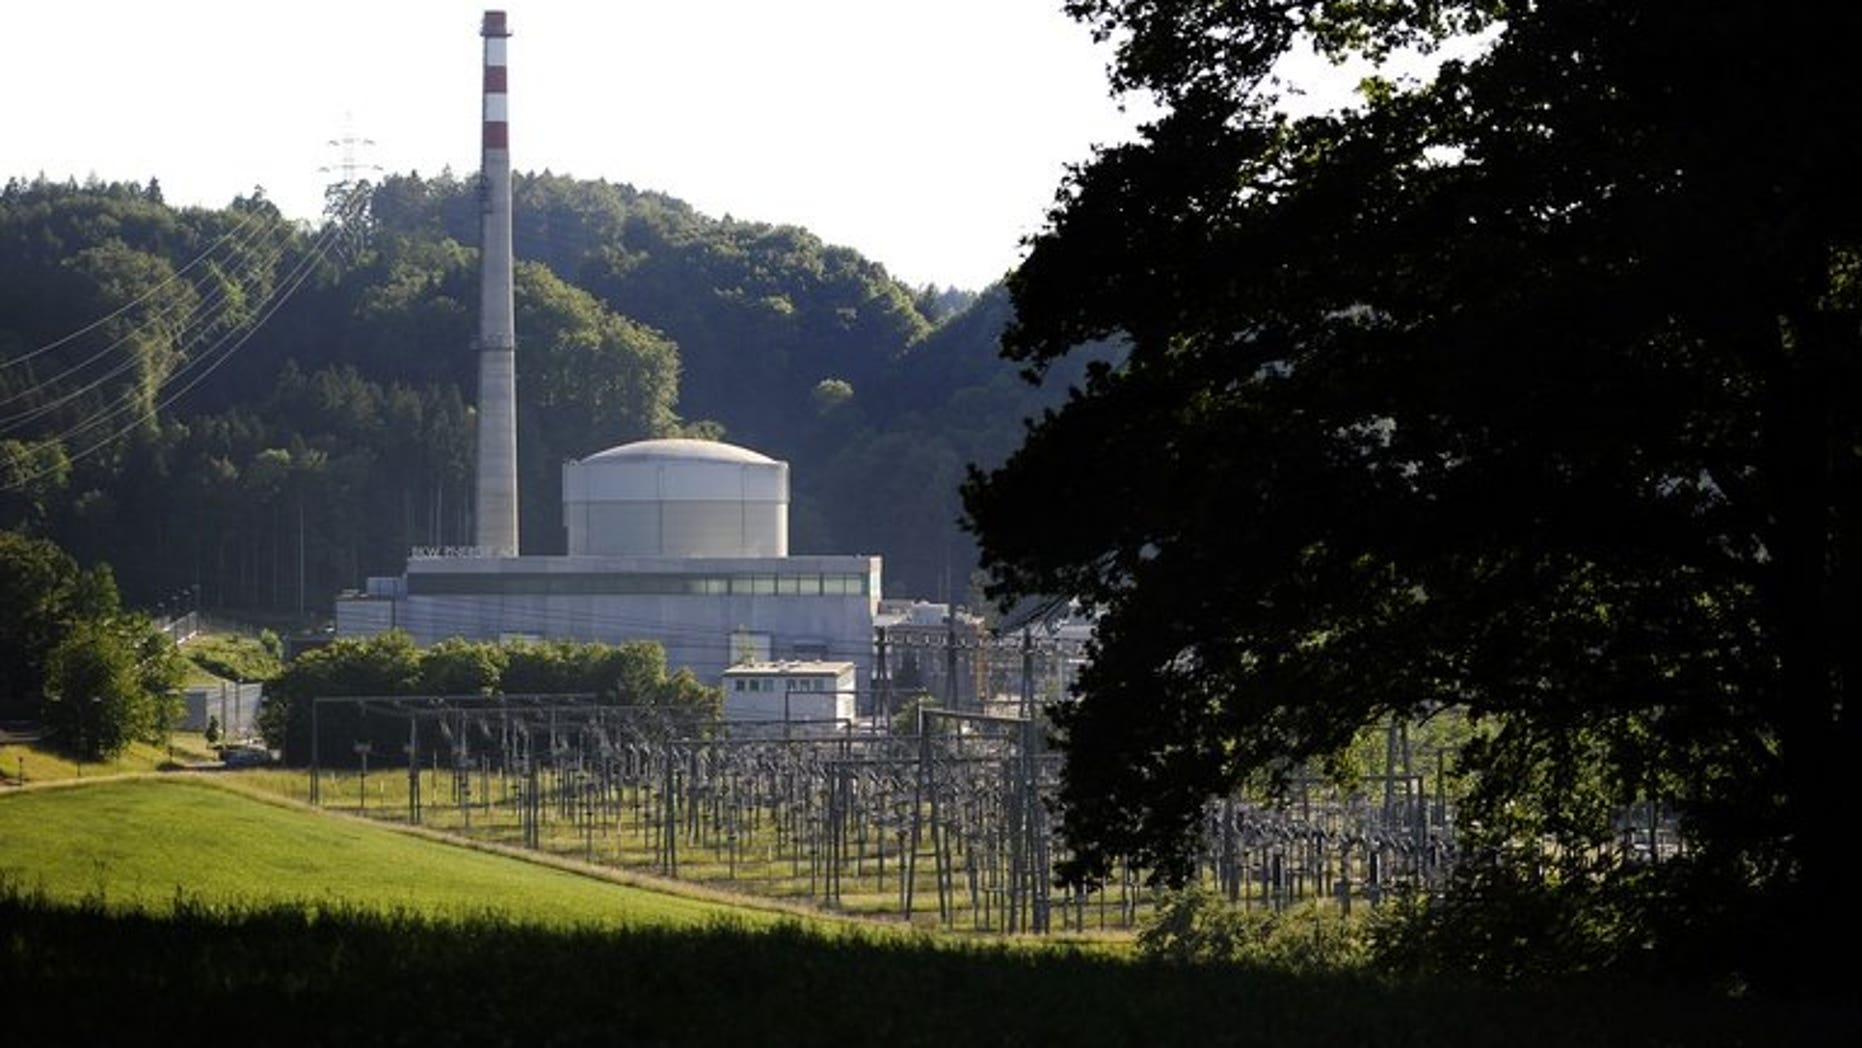 The Muehleberg nuclear power plant in Switzerland, on May 25, 2011. Scientists have discovered a radioactive substance in sediment under a Swiss lake used for drinking water and situated near a nuclear plant, according to the Le Matin Dimanche weekly.